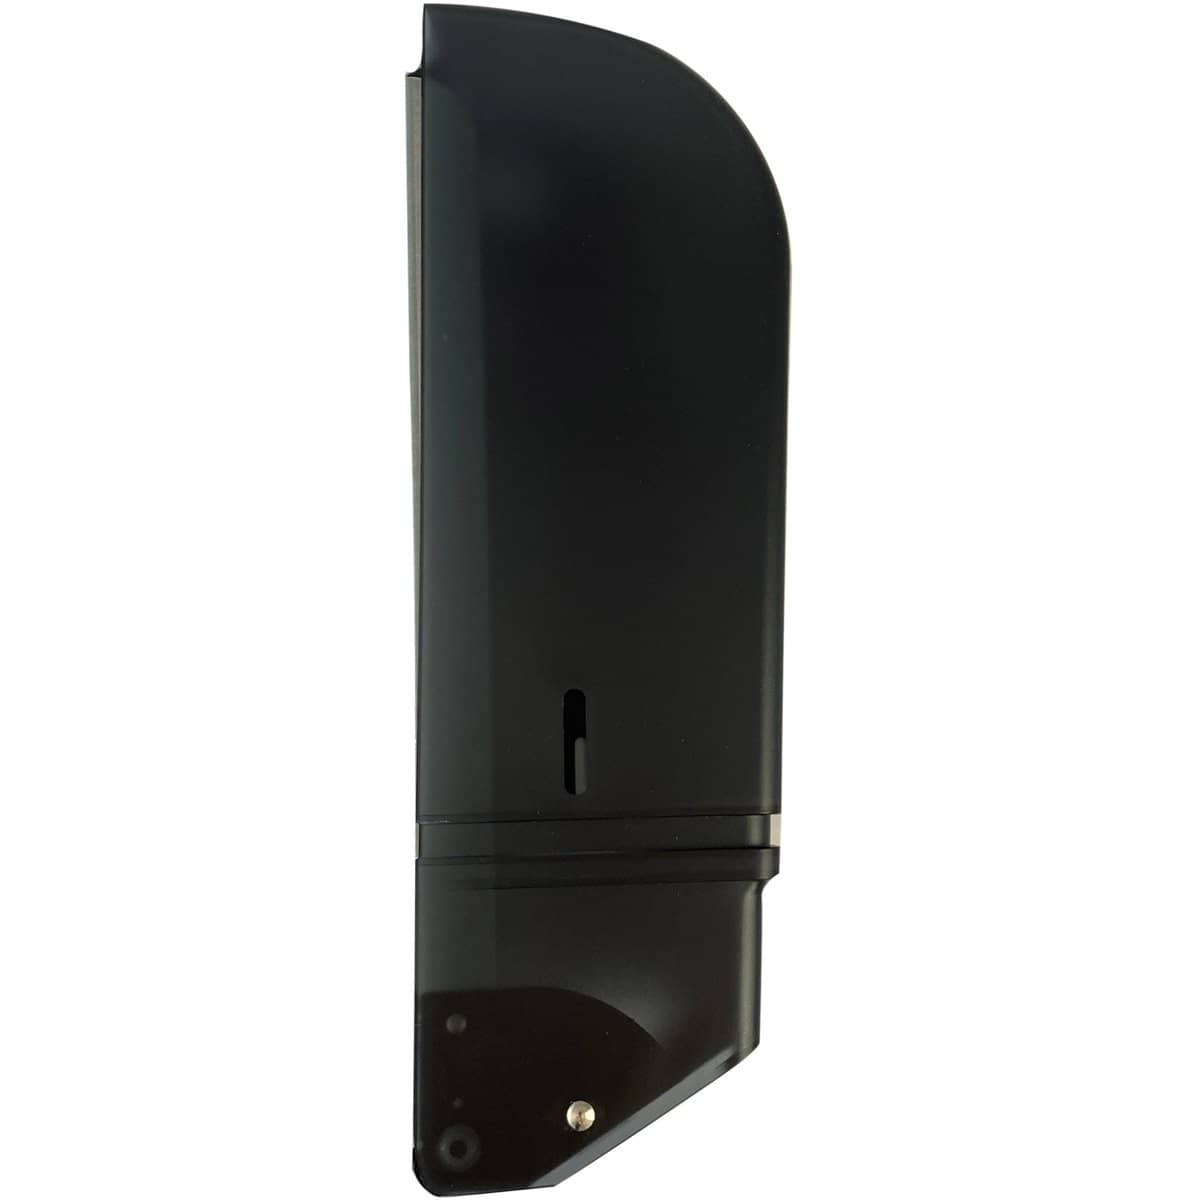 VISTA Multifold/C-Fold Paper Towel Dispenser - PT2001 - TotalRestroom.com